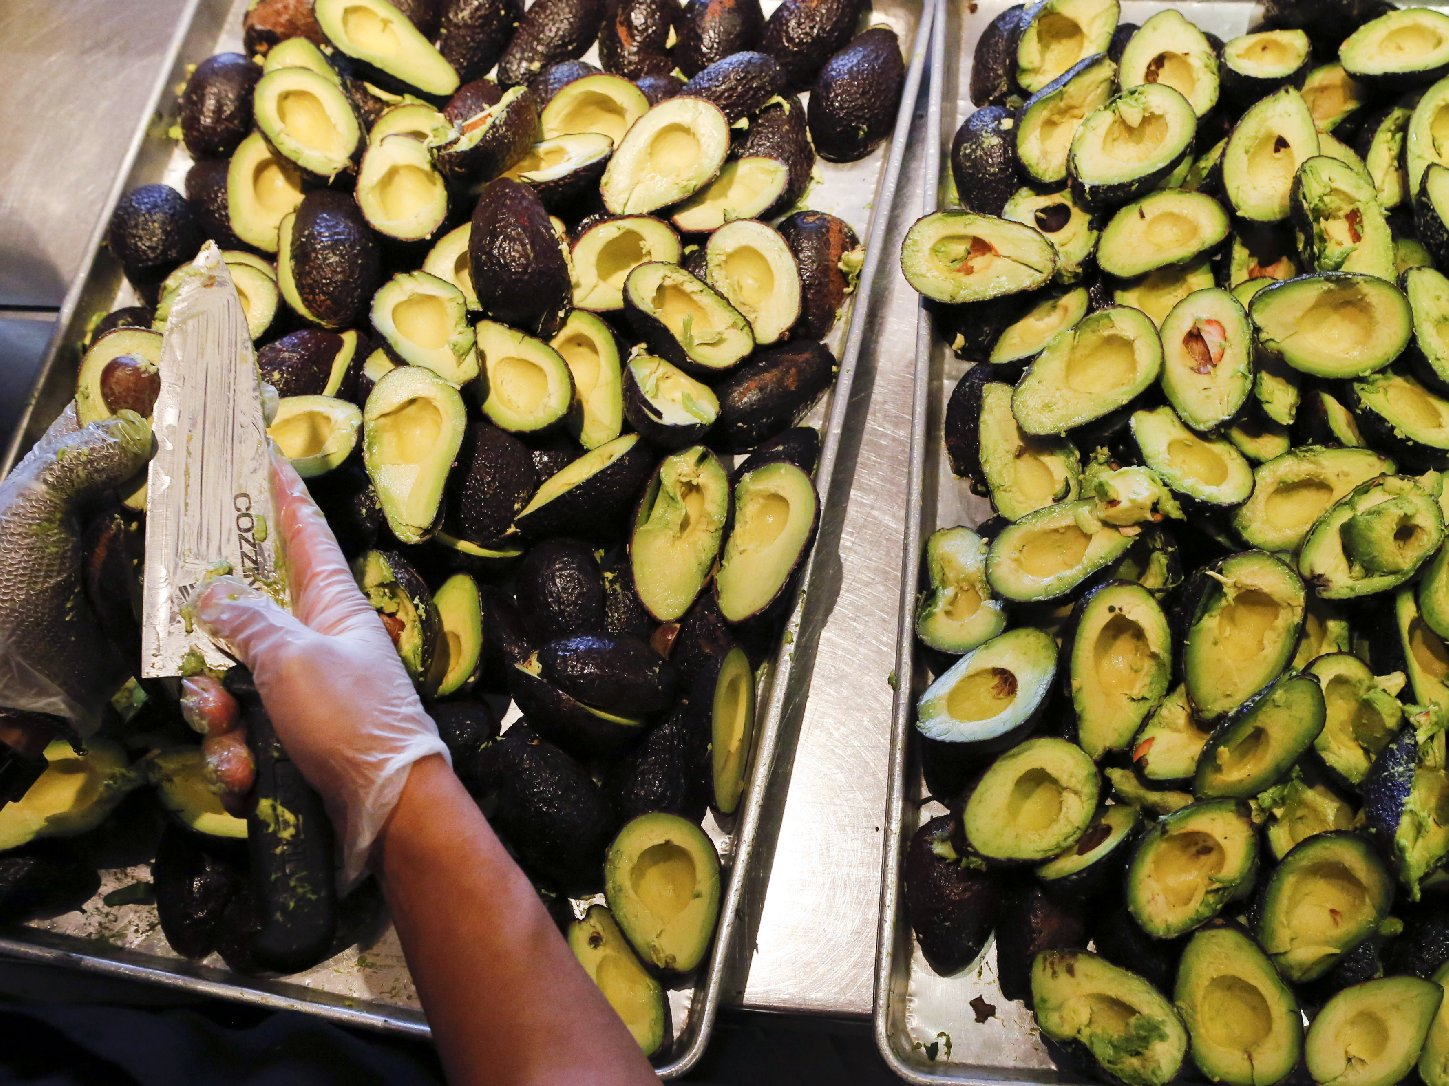 An employee prepares to make fresh guacamole at a Chipotle restaurant in Hollywood, Calif. Photo: Patrick T. Fallon/Bloomberg